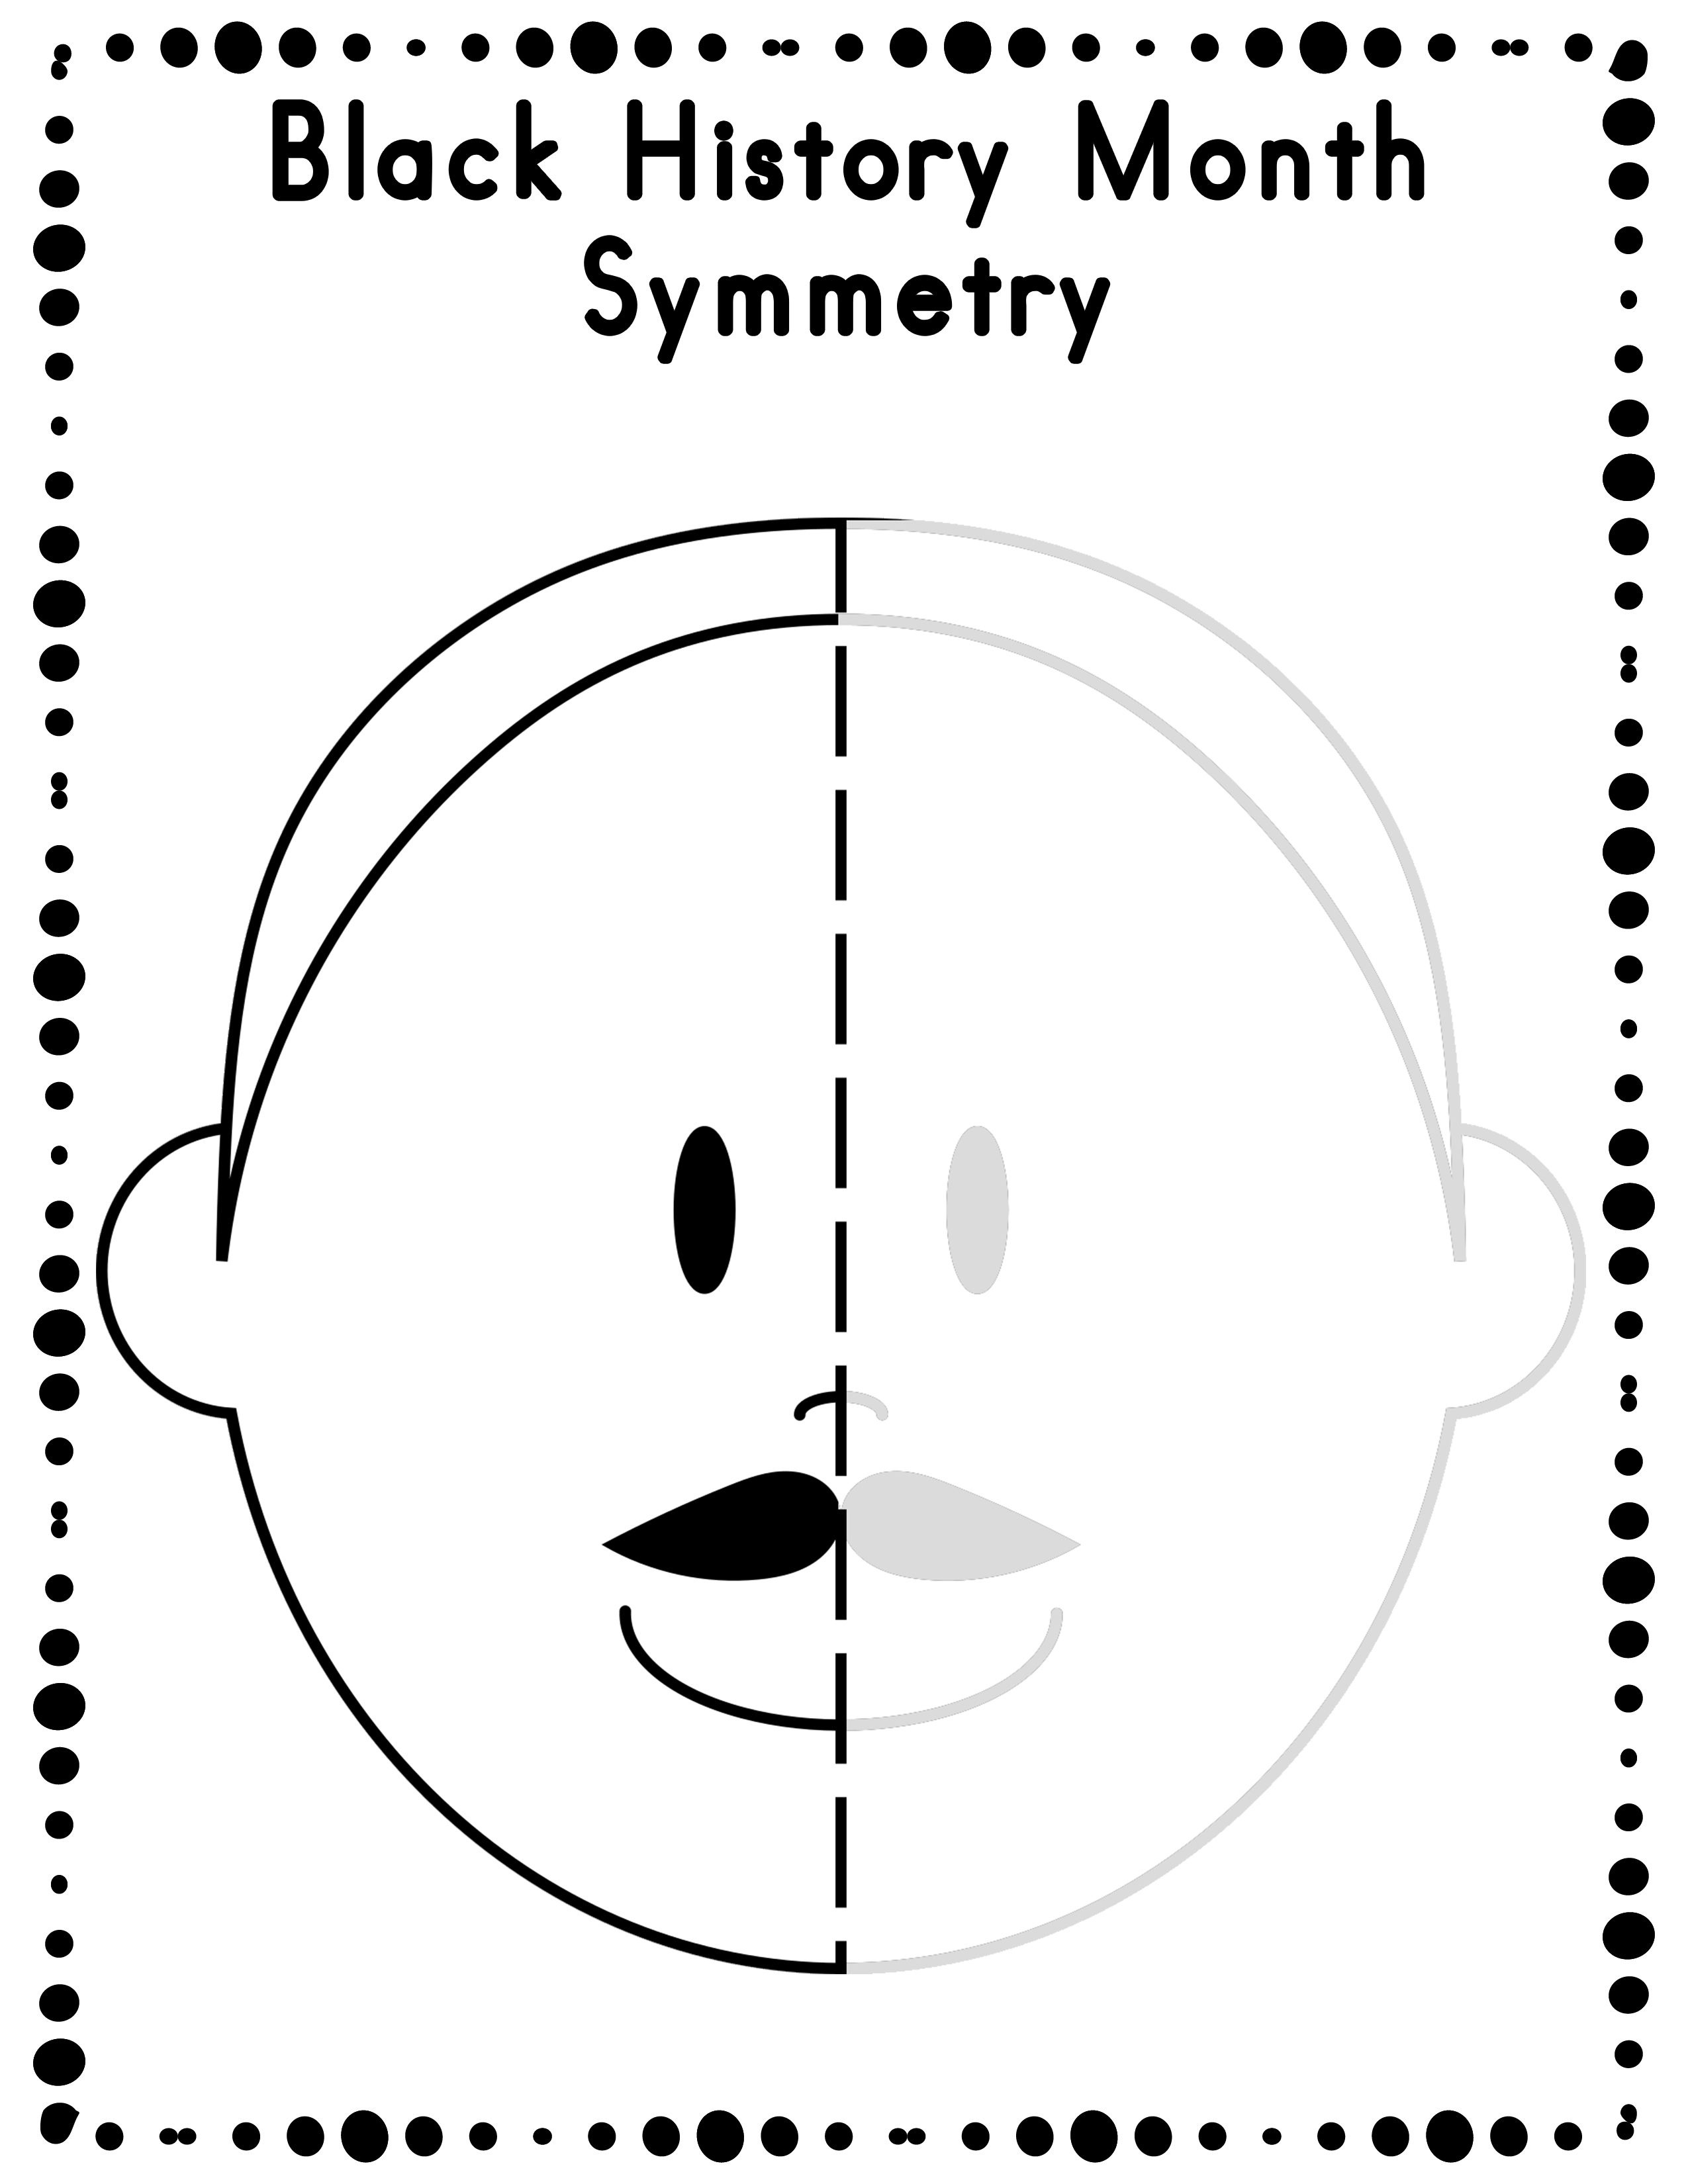 Free Black History Month Symmetry Activity Worksheets | Classroom - Free Printable Black History Month Word Search